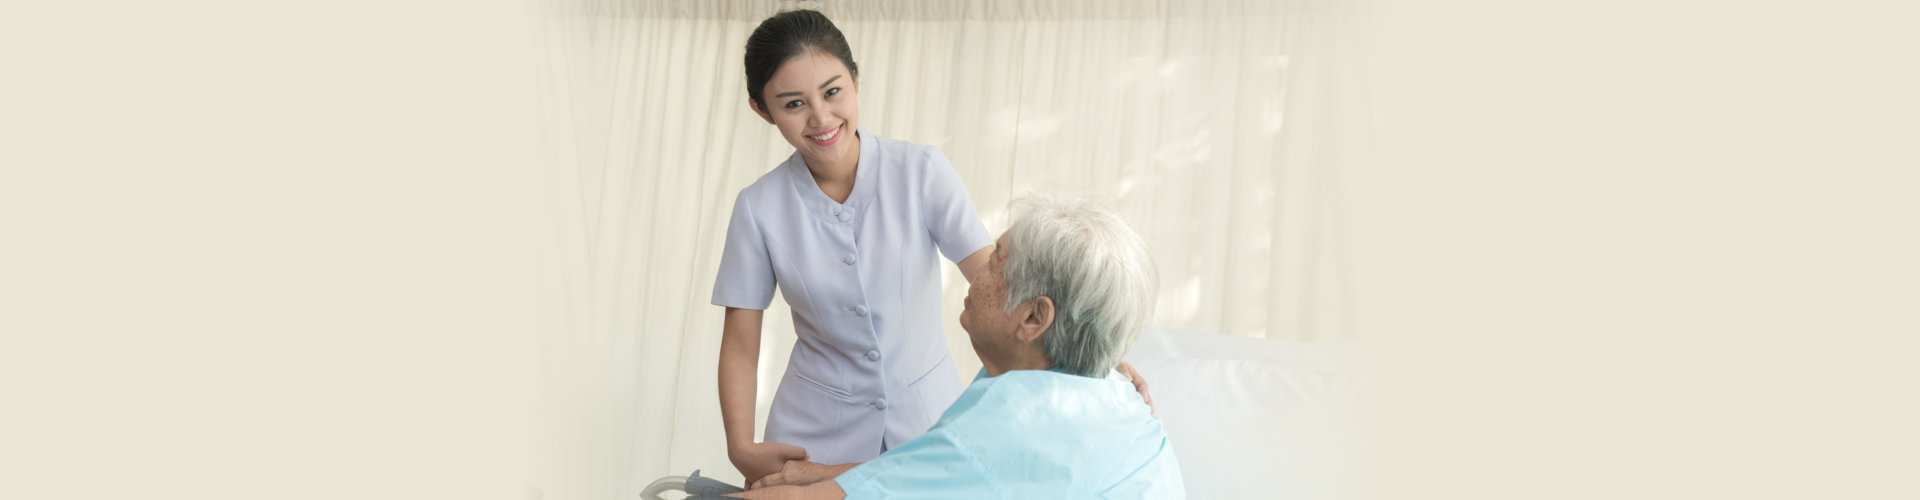 Caregiver attending to elderly woman